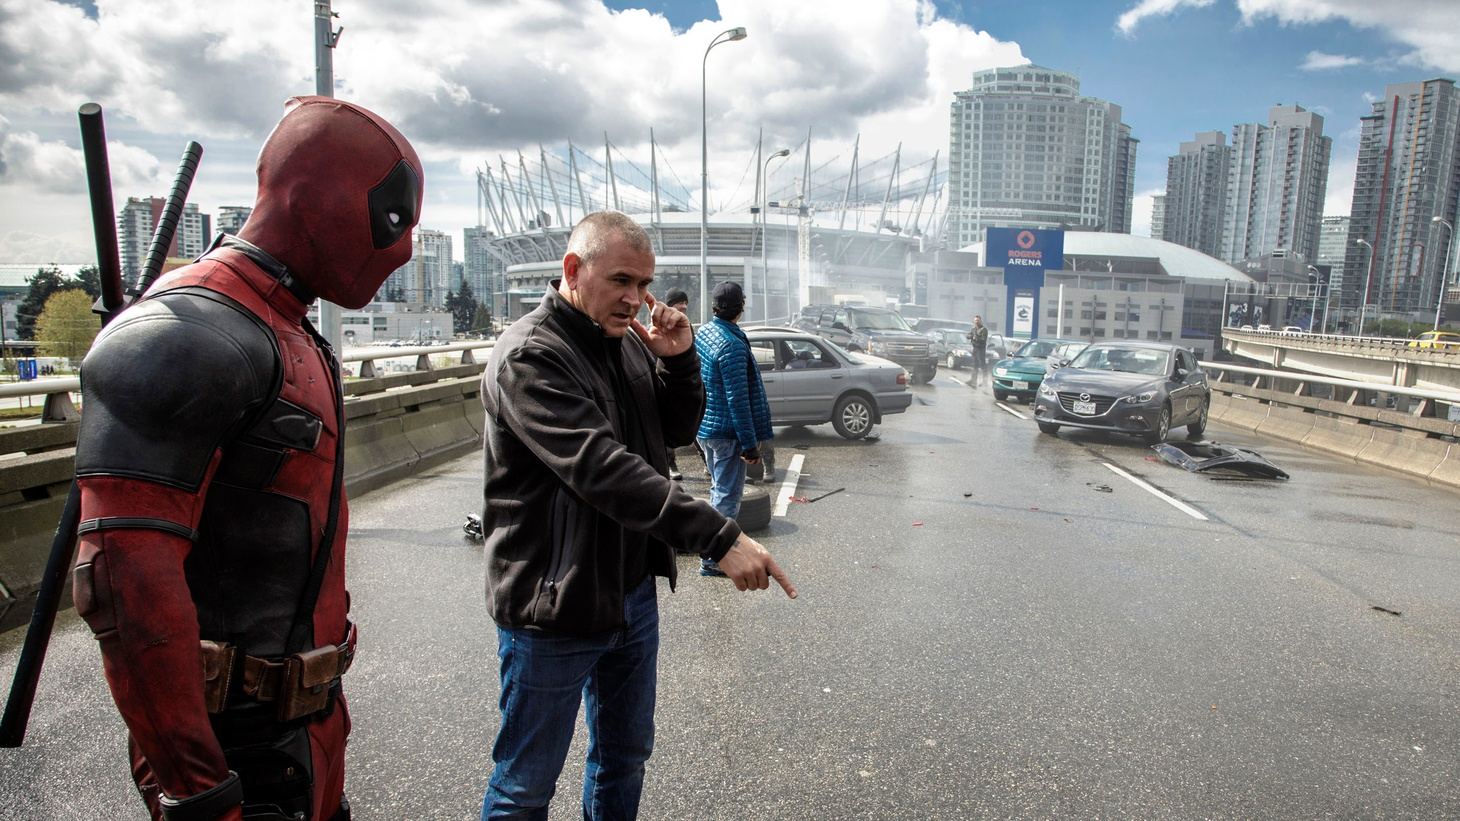 Director Tim Miller and producer Simon Kinberg tell us how Deadpoolwent from being almost dead at Fox to an R-rated box office sensation. And as for the leaked test footage that made fans go wild and got the movie made? Miller swears it wasn't him.